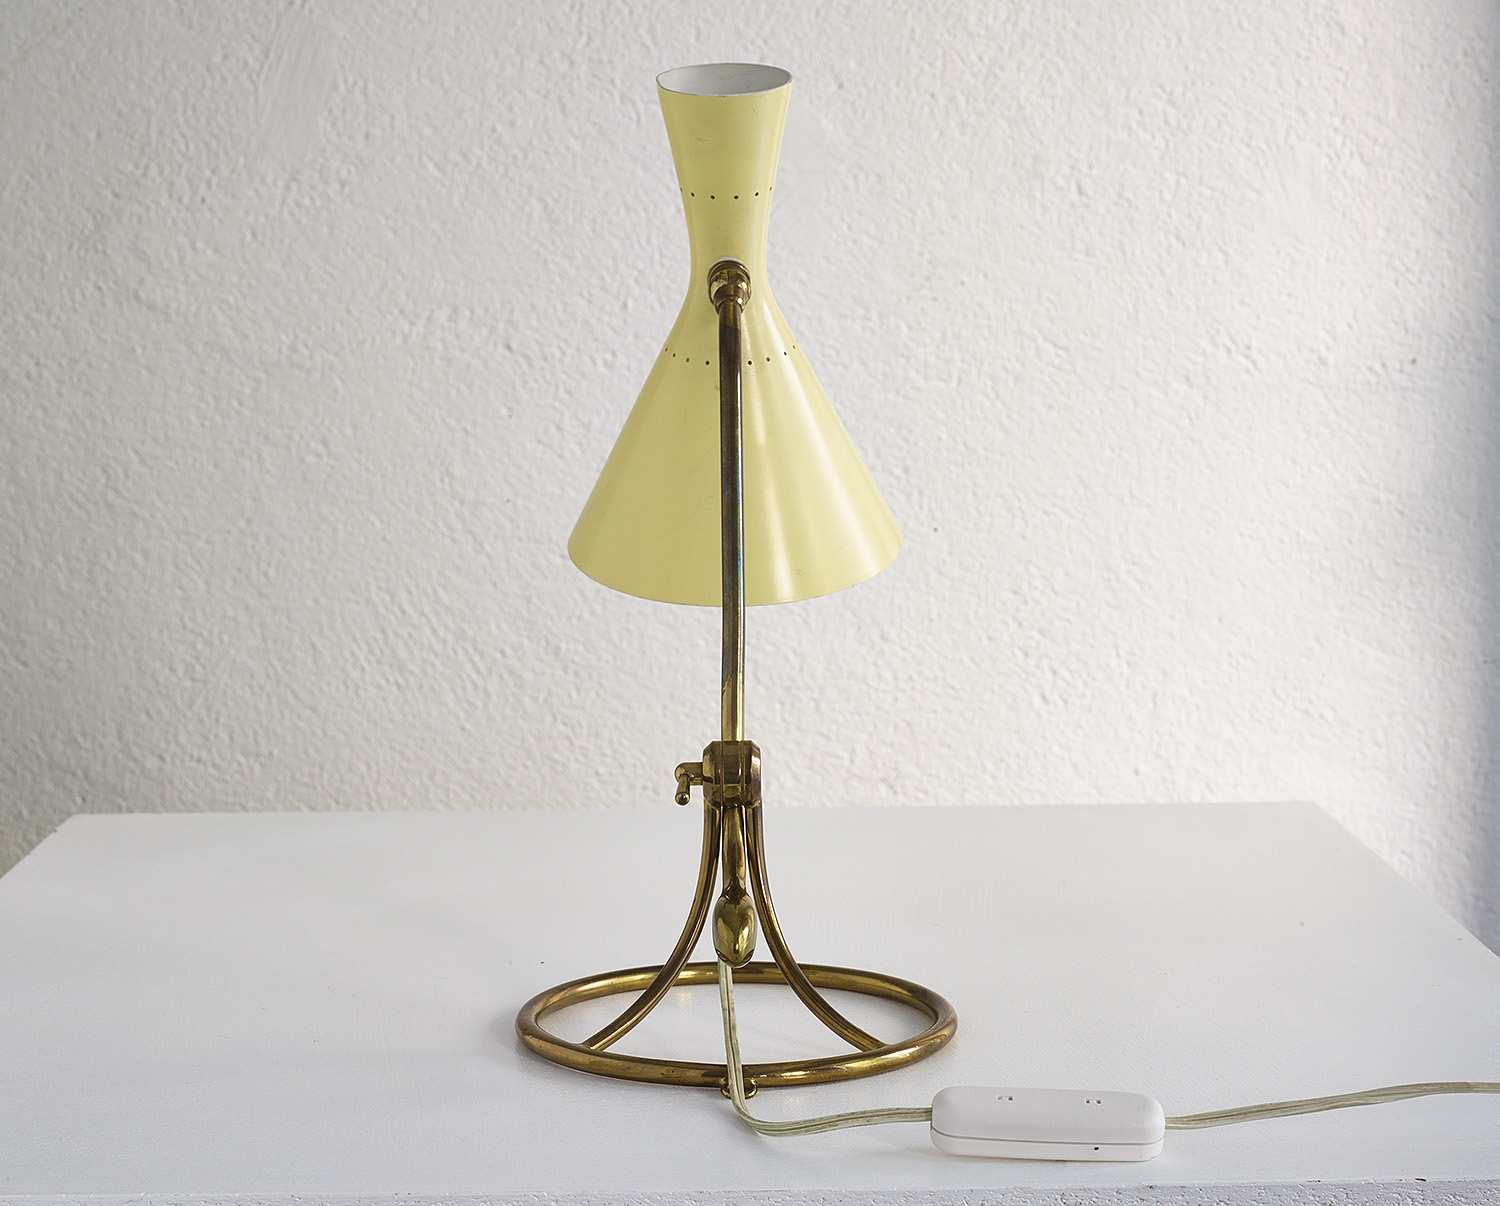 counterweight-table-lamp-by-baumann-kolliker-image-03